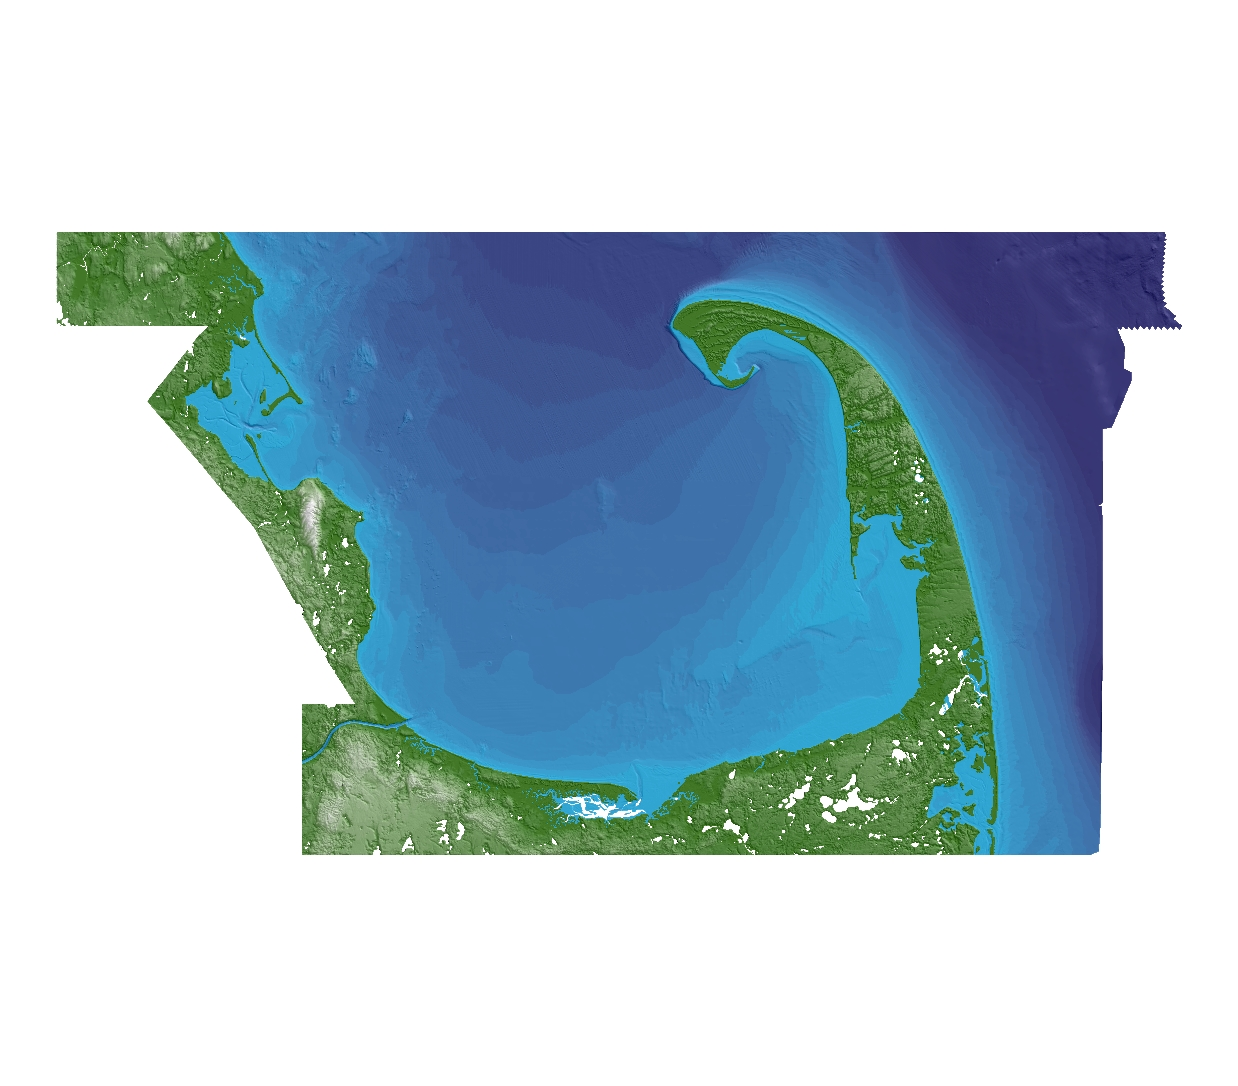 Preview image of the terrain model of Cape Cod Bay, Massachusetts. File is located in the compressed zip file.